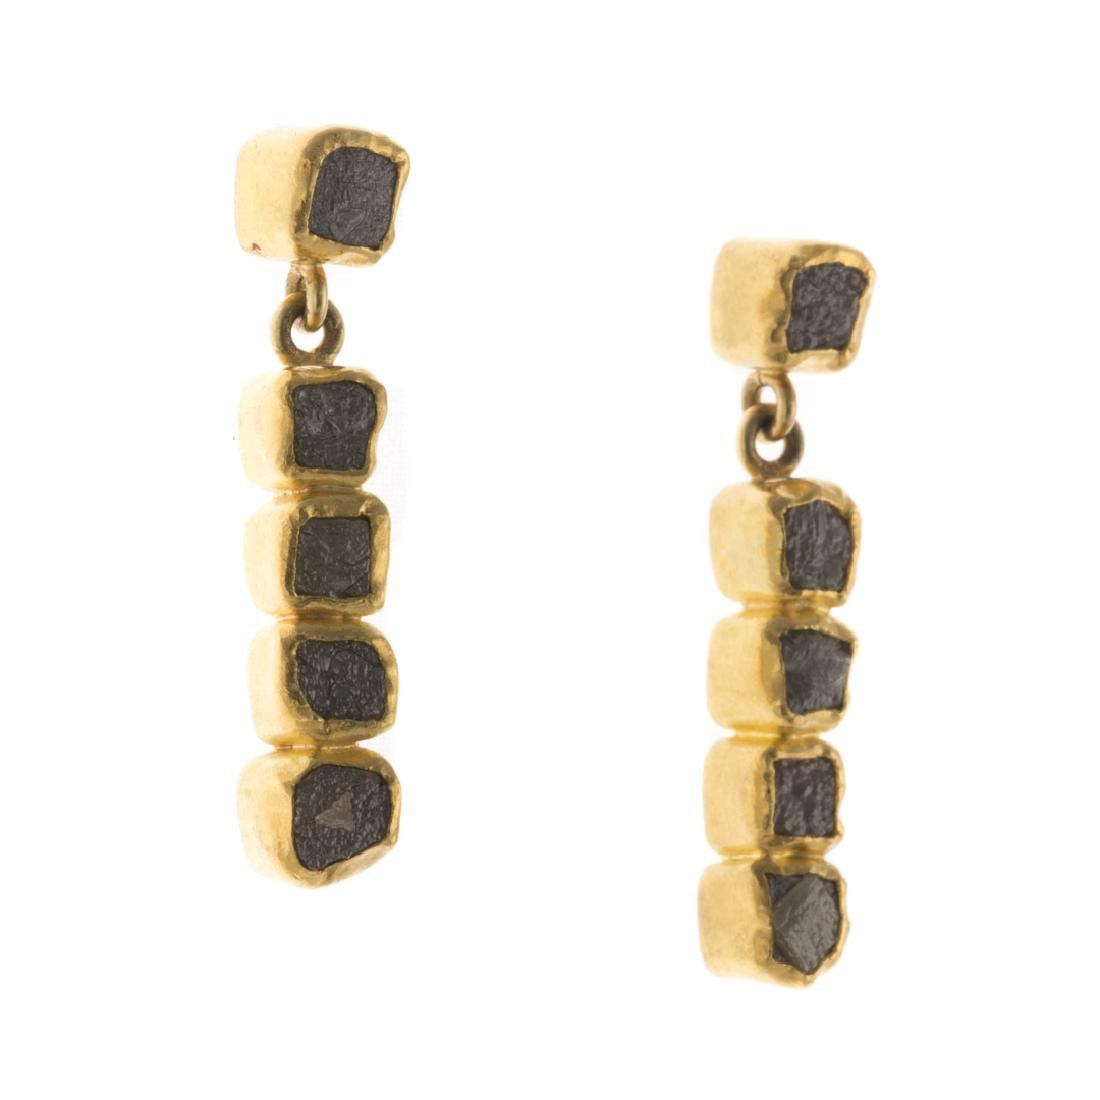 A Pair of Raw, Natural Diamond Earrings in 22K - 2